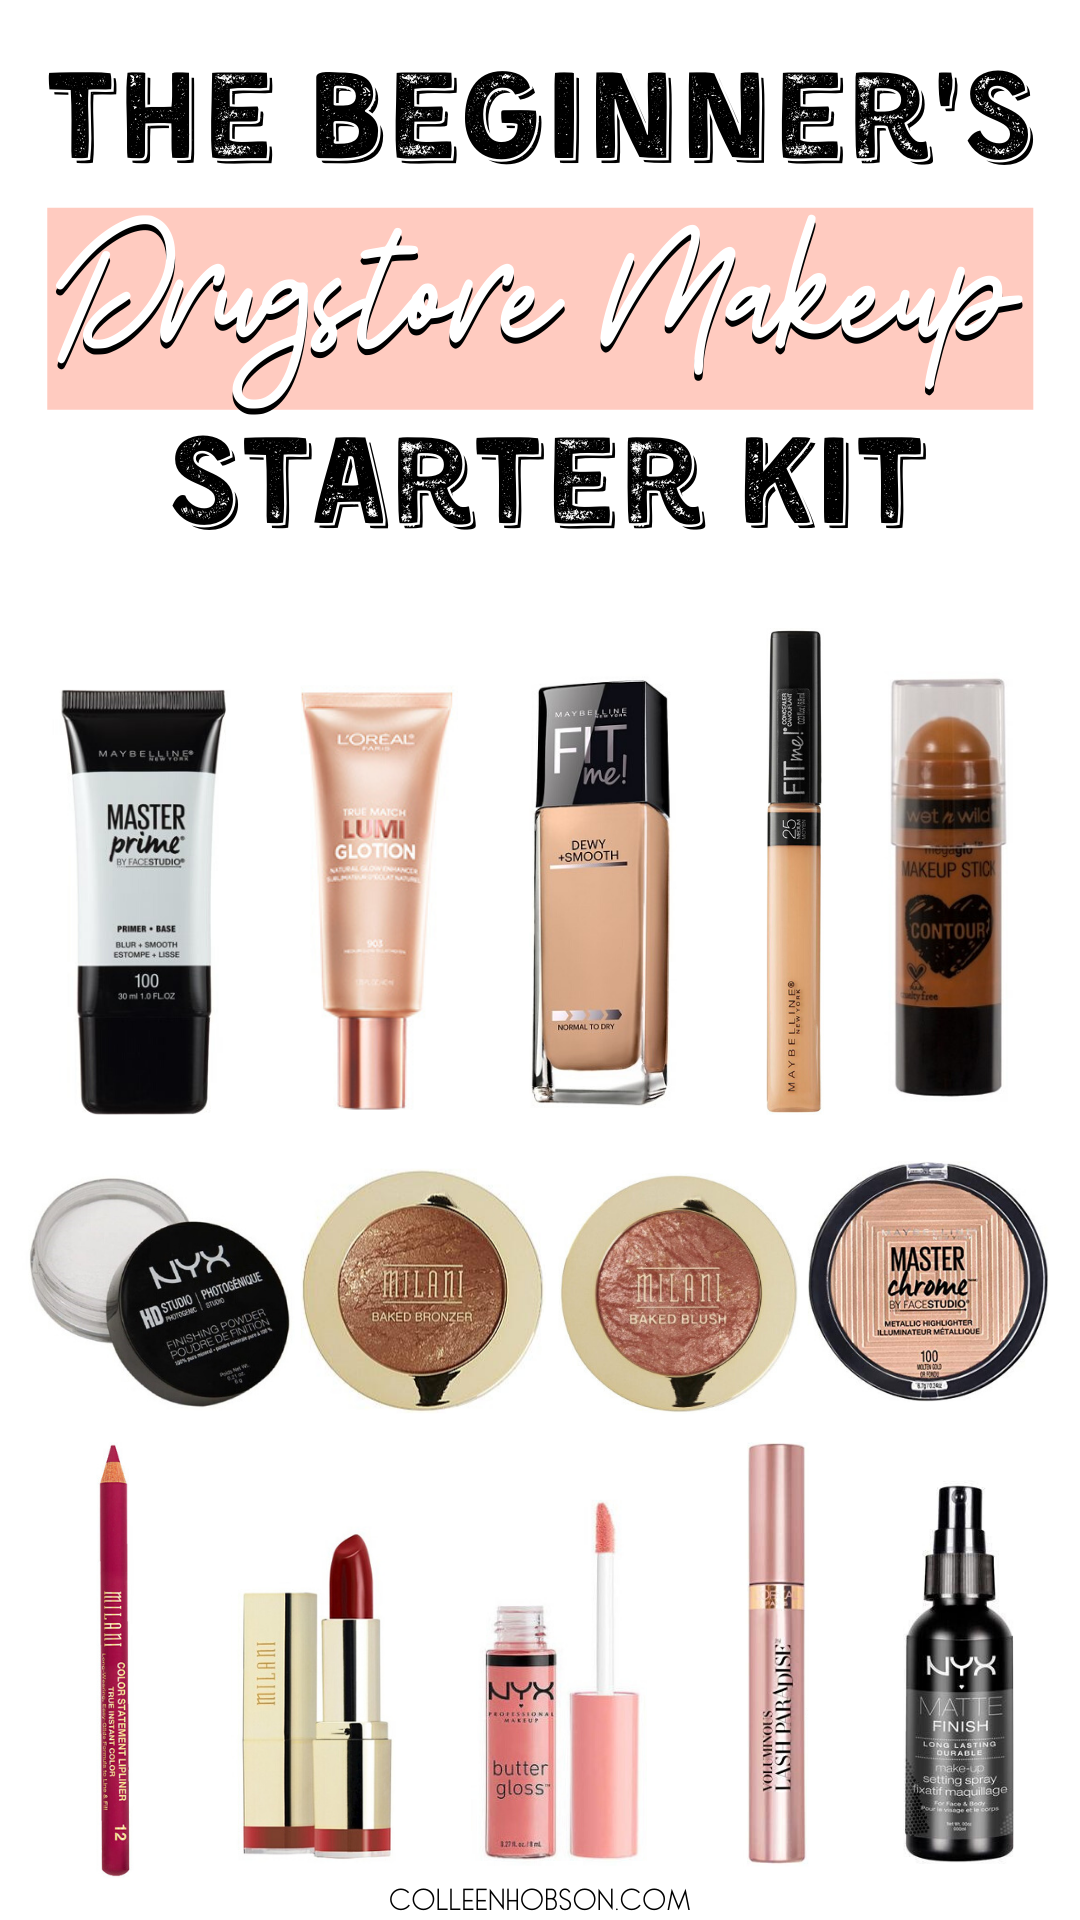 Drugstore Makeup Starter Kit For Beginners - Colleen Hobson